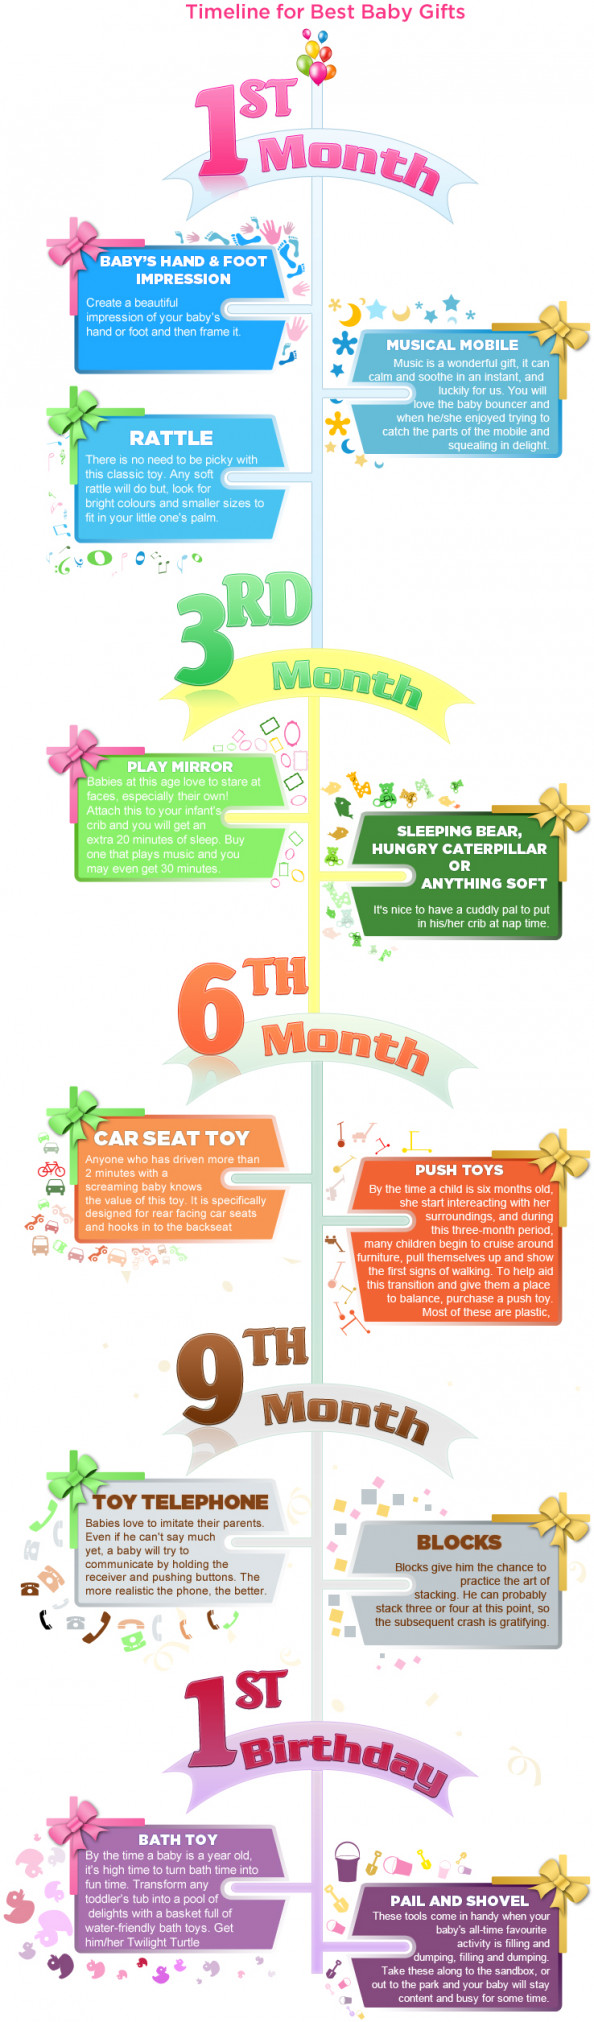 Baby Shower Gifts Timeline Infographic